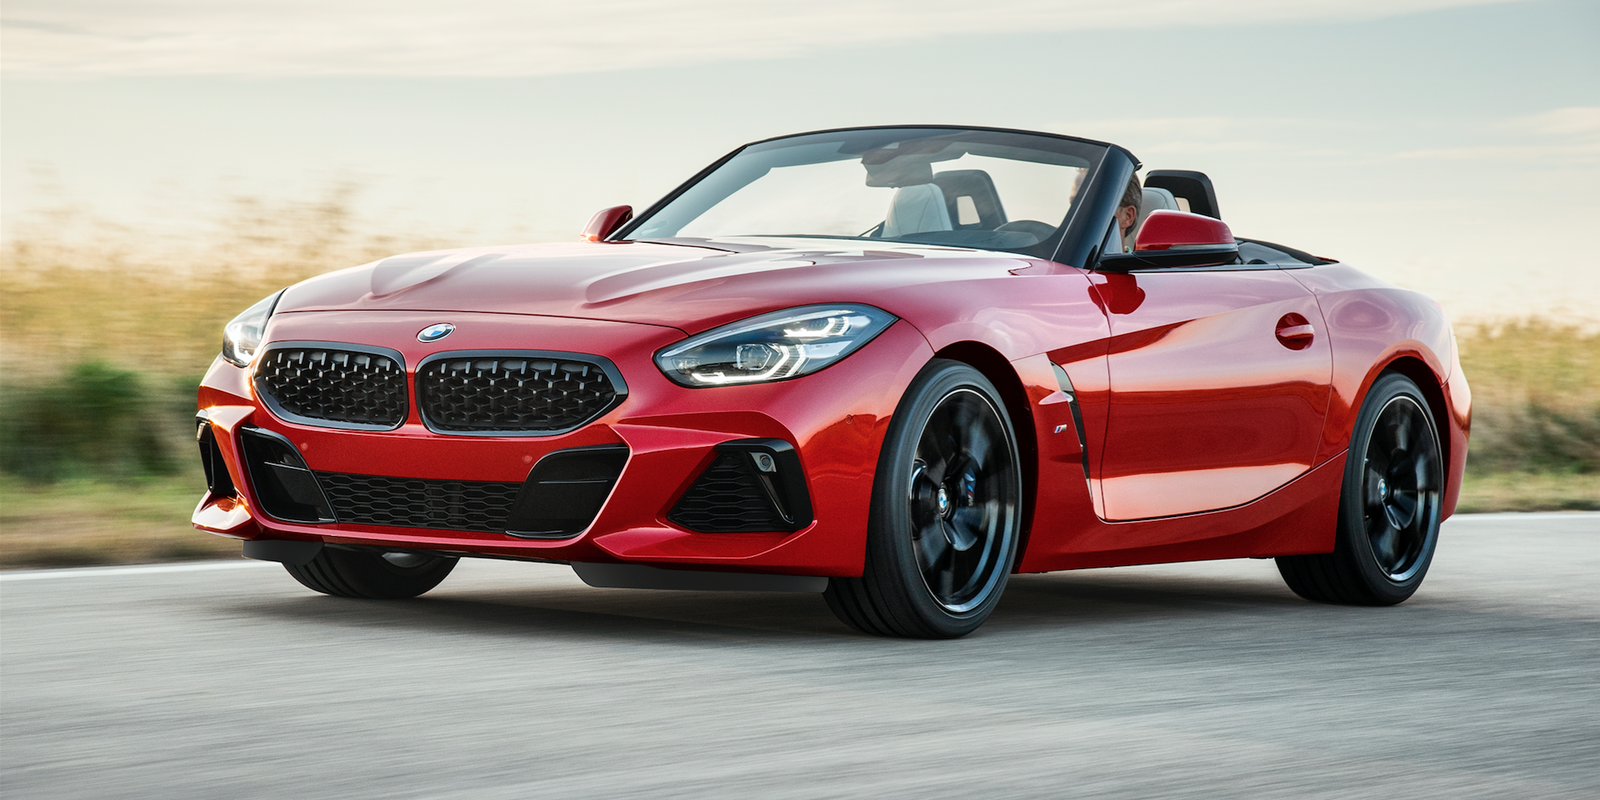 The 2019 Bmw Z4 M40i Has 382 Horsepower Gets To 60 In 4 4 Seconds